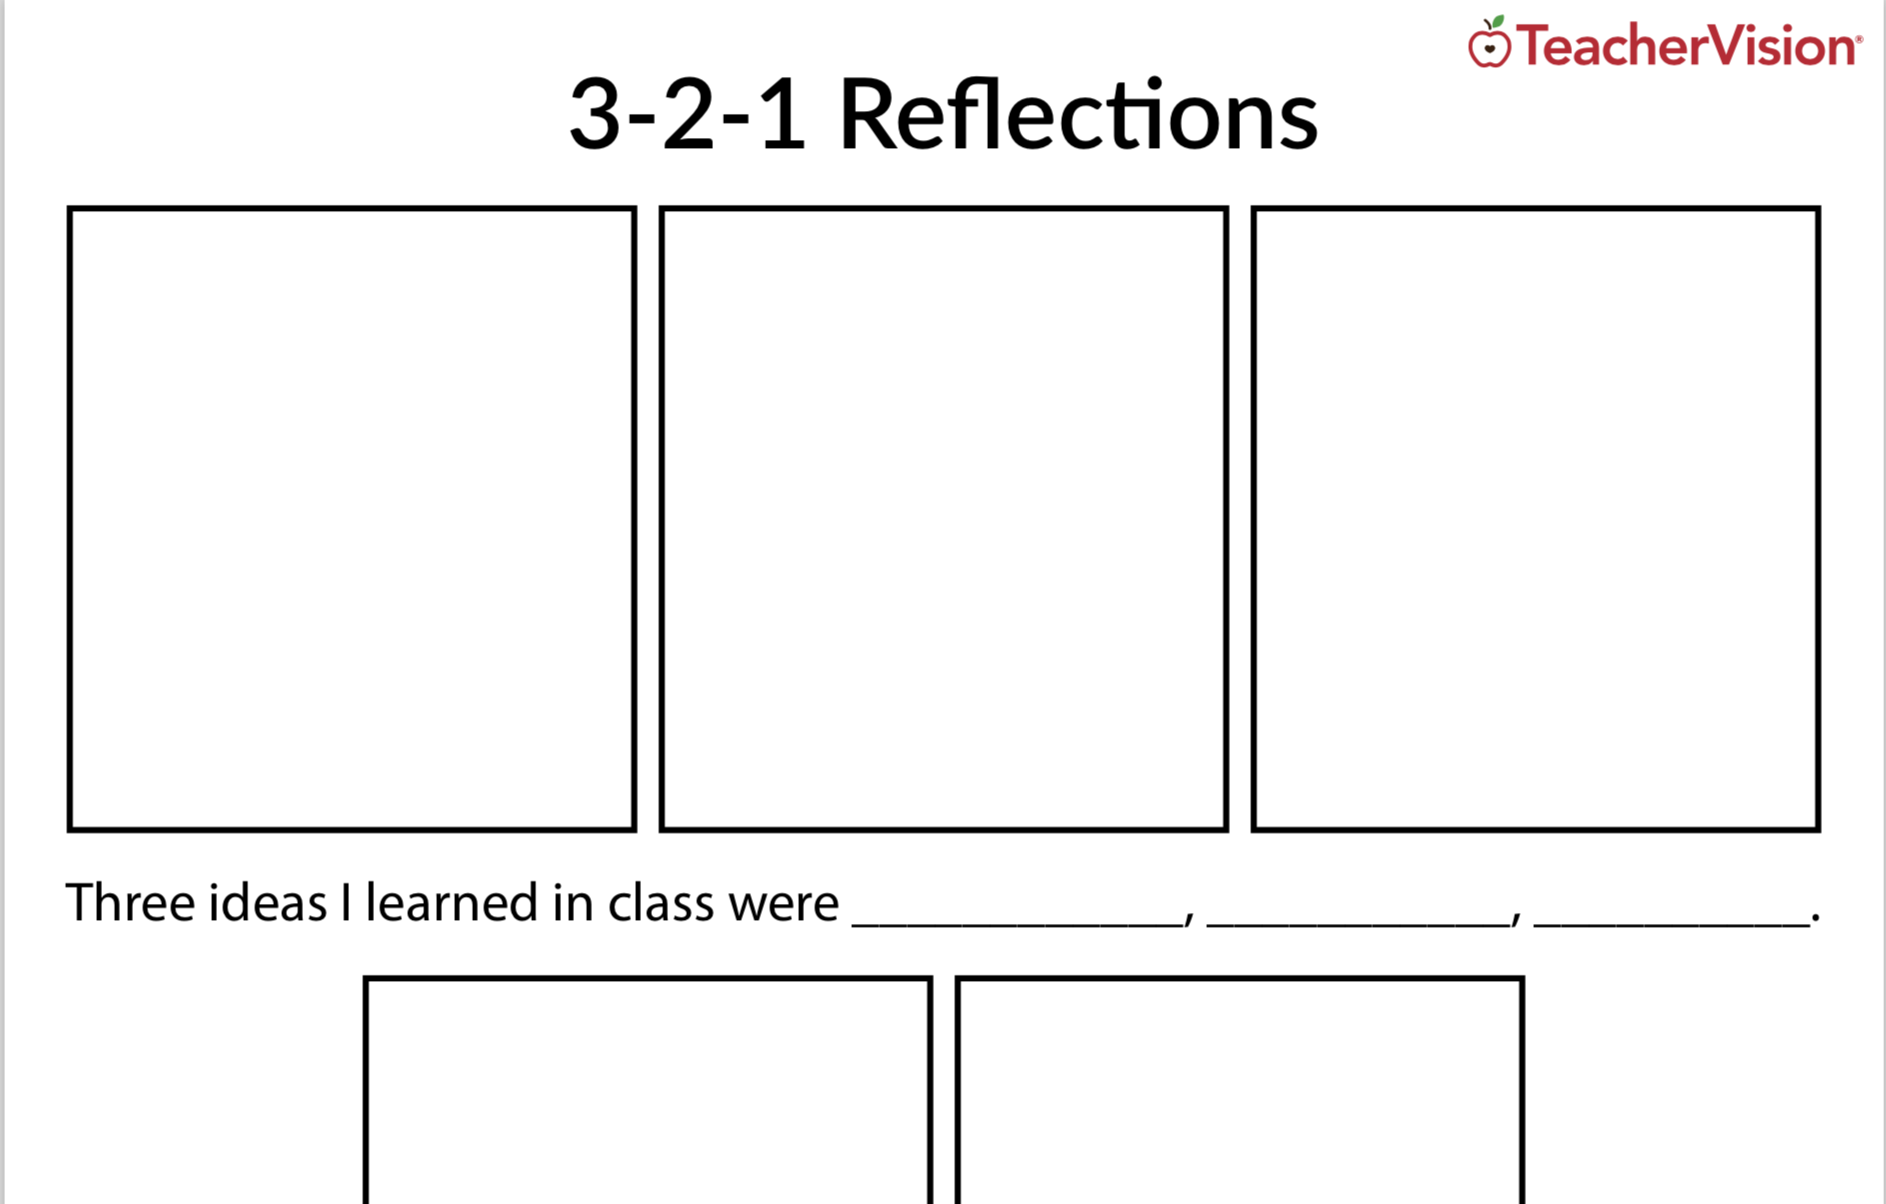 3-2-1 Reflection